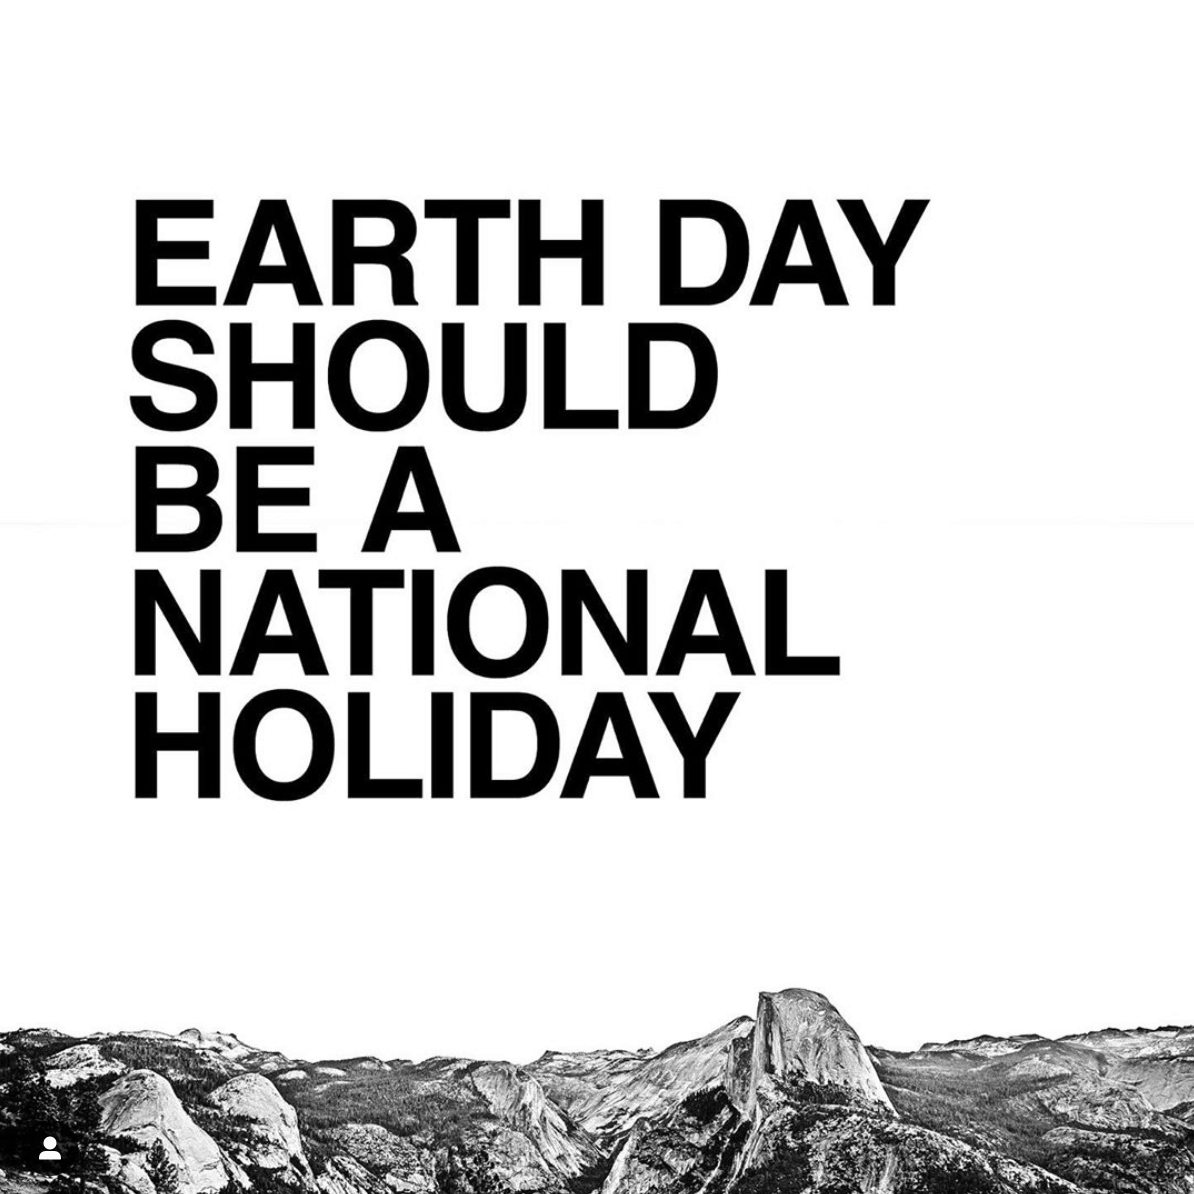 The North Face Wants Earth Day to be a National Holiday — And You Can Help